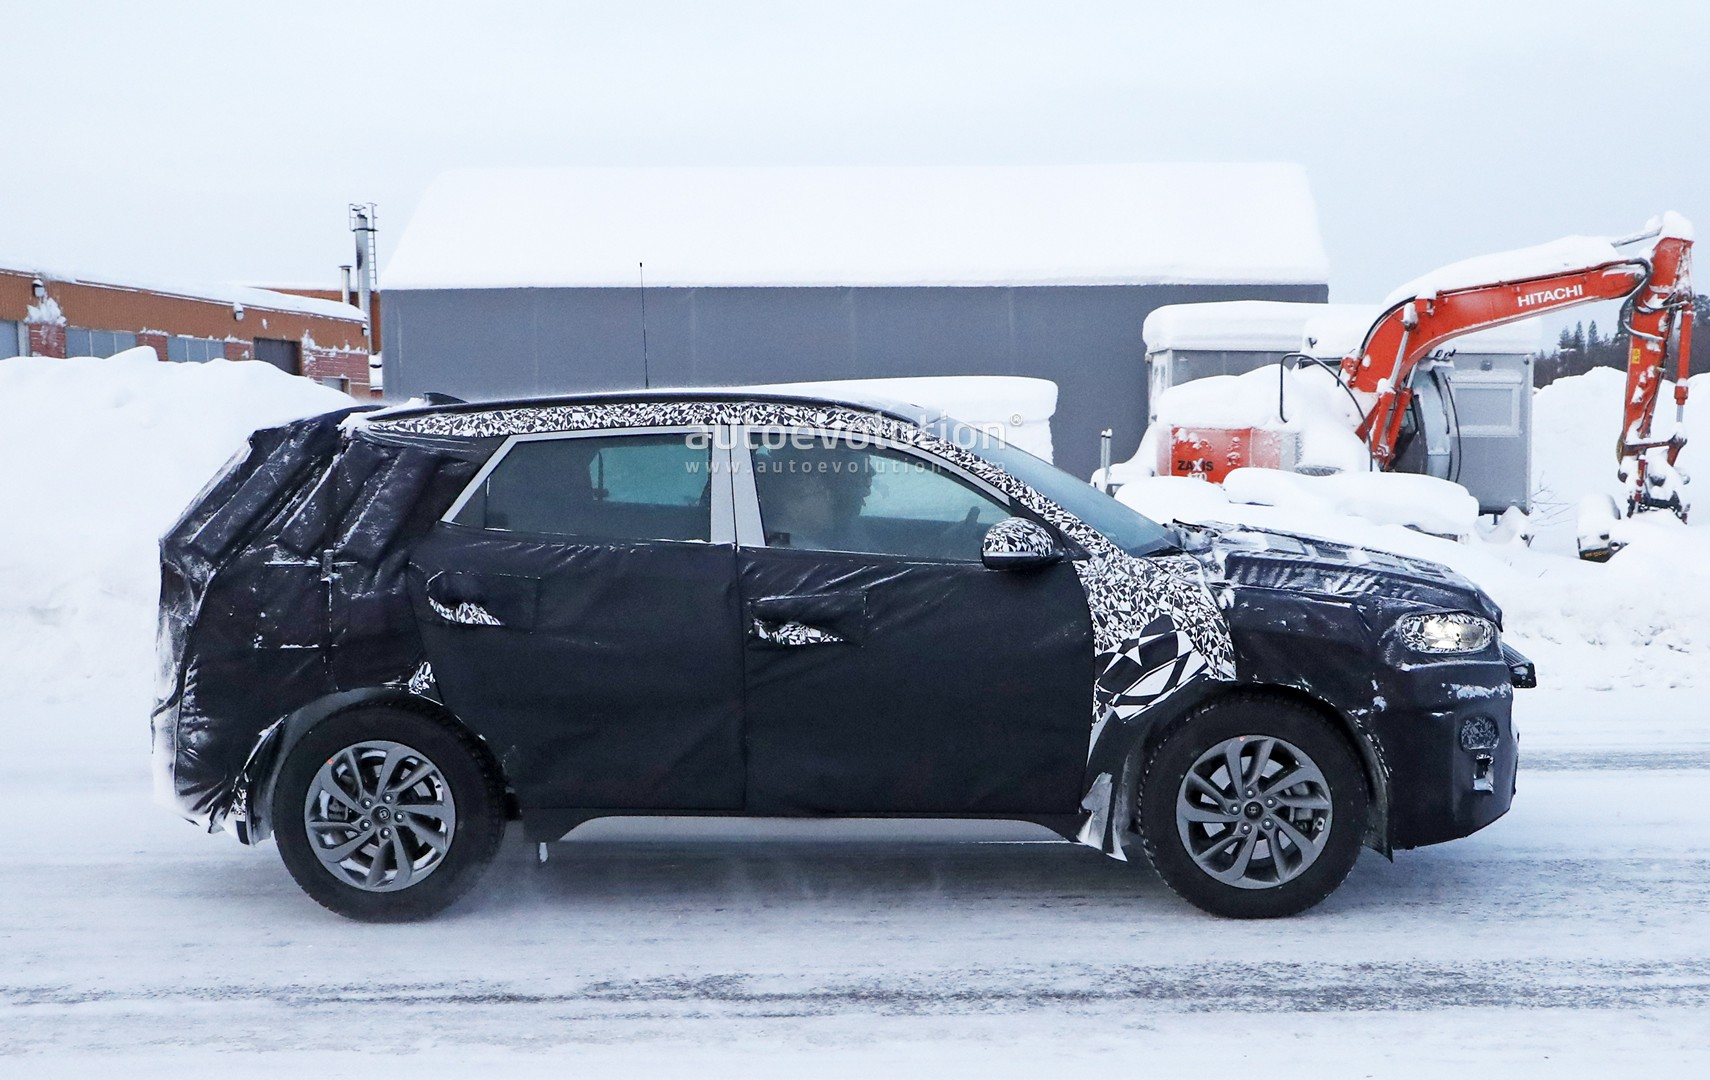 Cadillac Xt4 2019 >> 2019 Hyundai Tucson Facelift Spied Undergoing Winter Testing - autoevolution